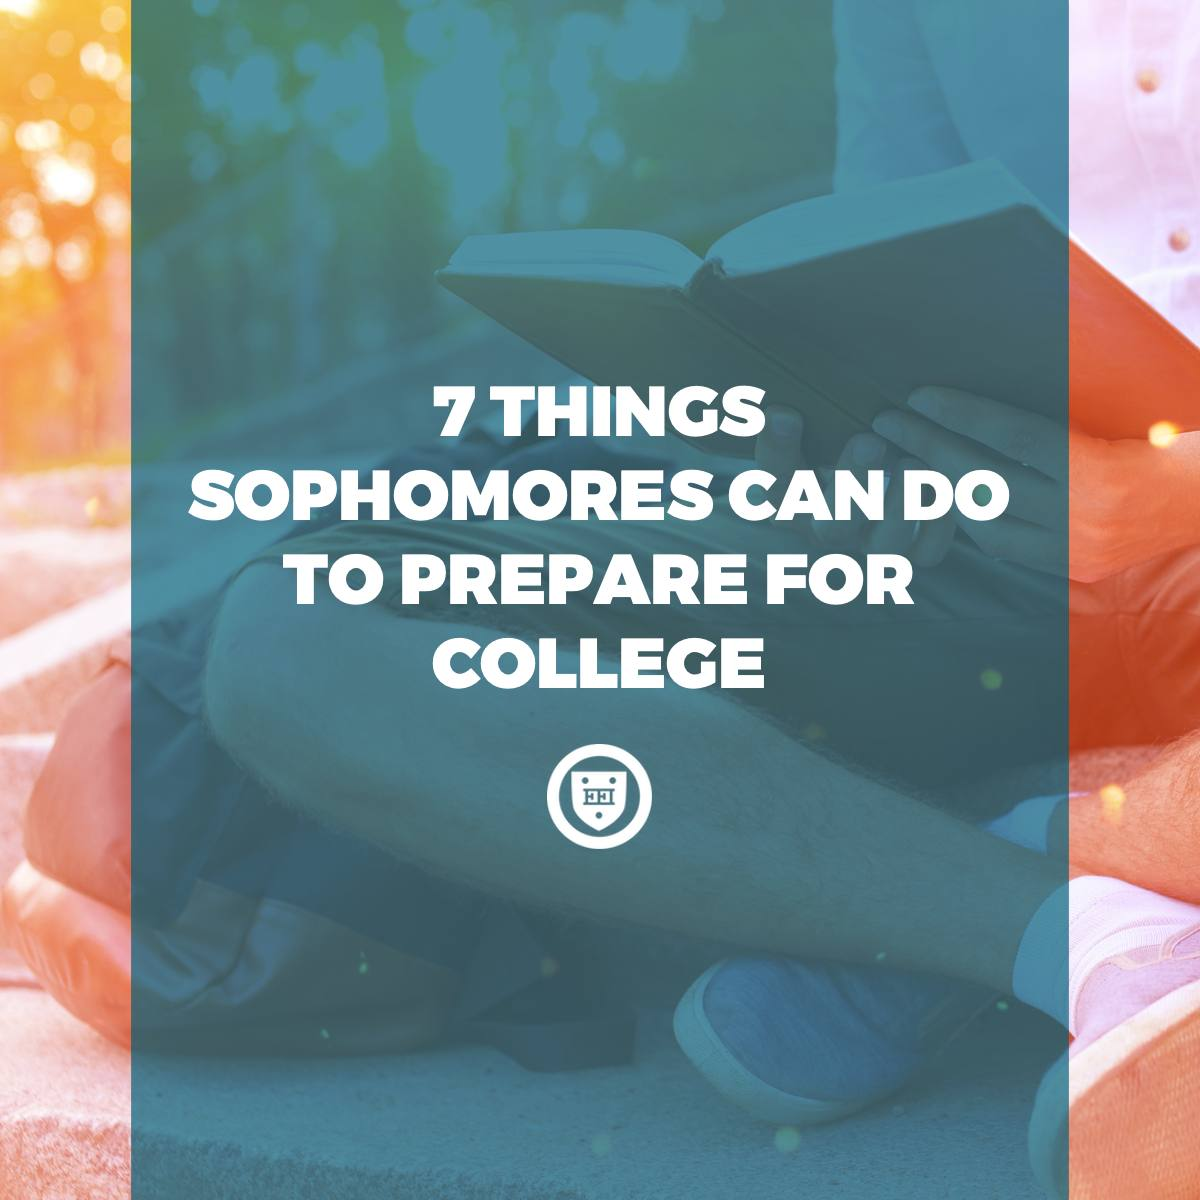 7 Things Sophomores Can Do to Prepare for College